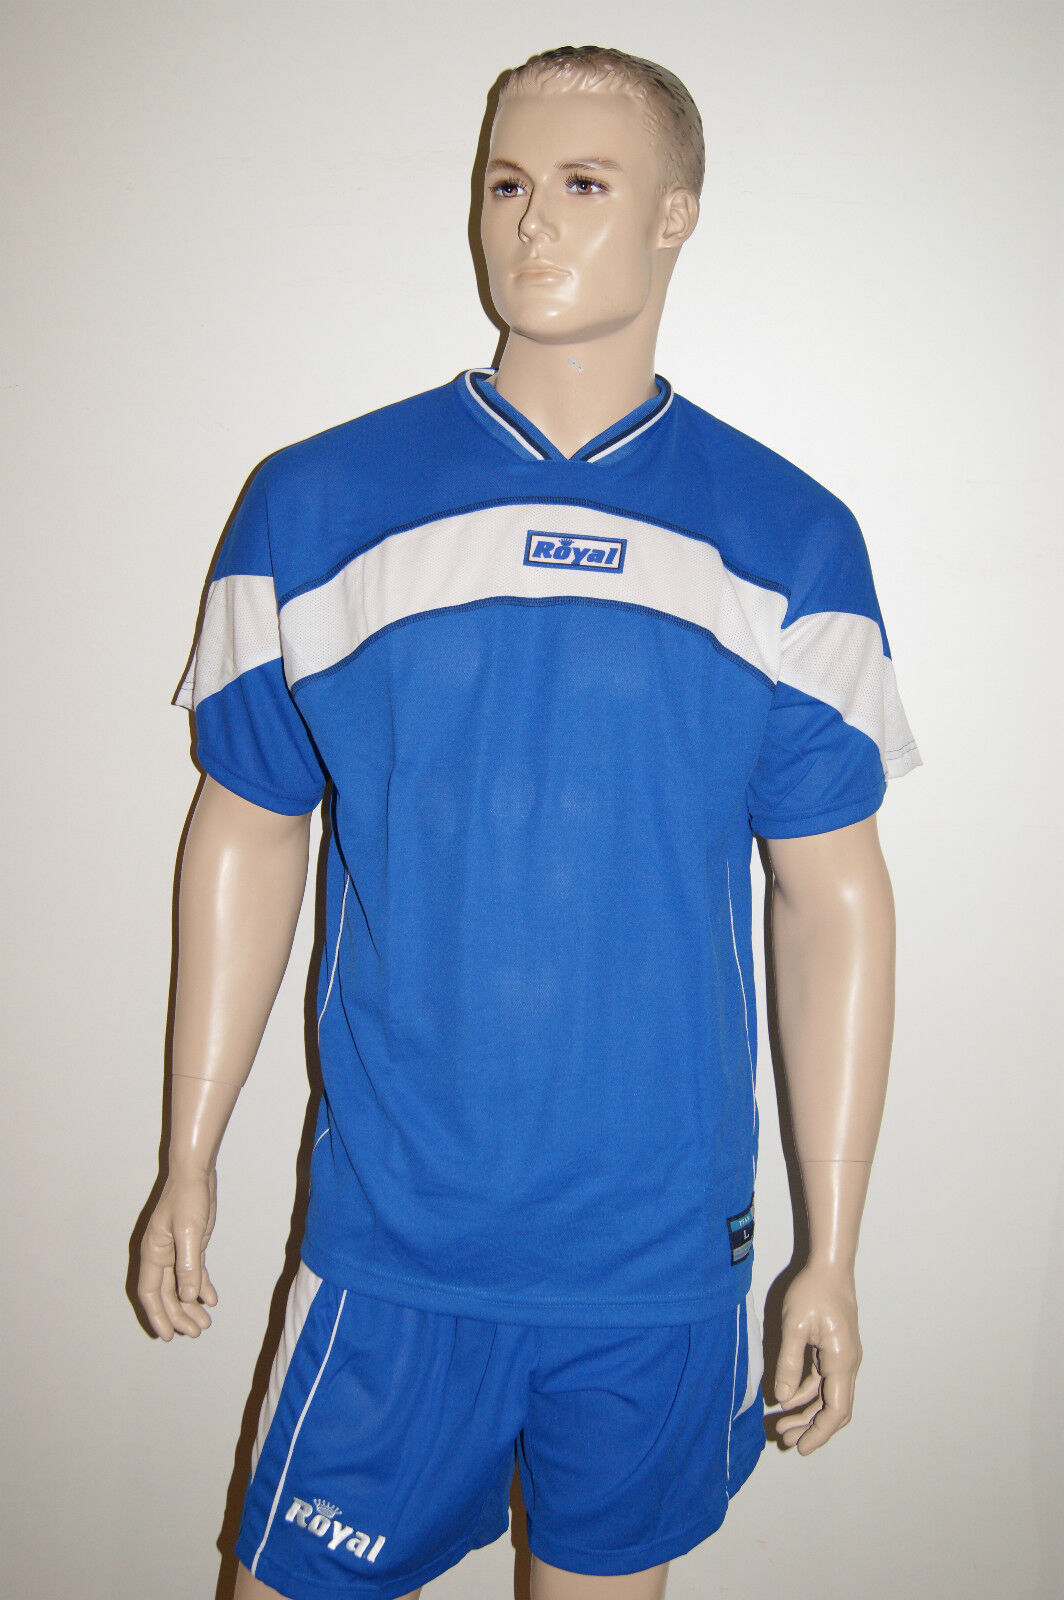 November - HIT  14 v.ROYAL,royal/blau, Kurzarmtrikot-Sets IRON v.ROYAL,royal/blau, 14 Gr. L + XL a8b861